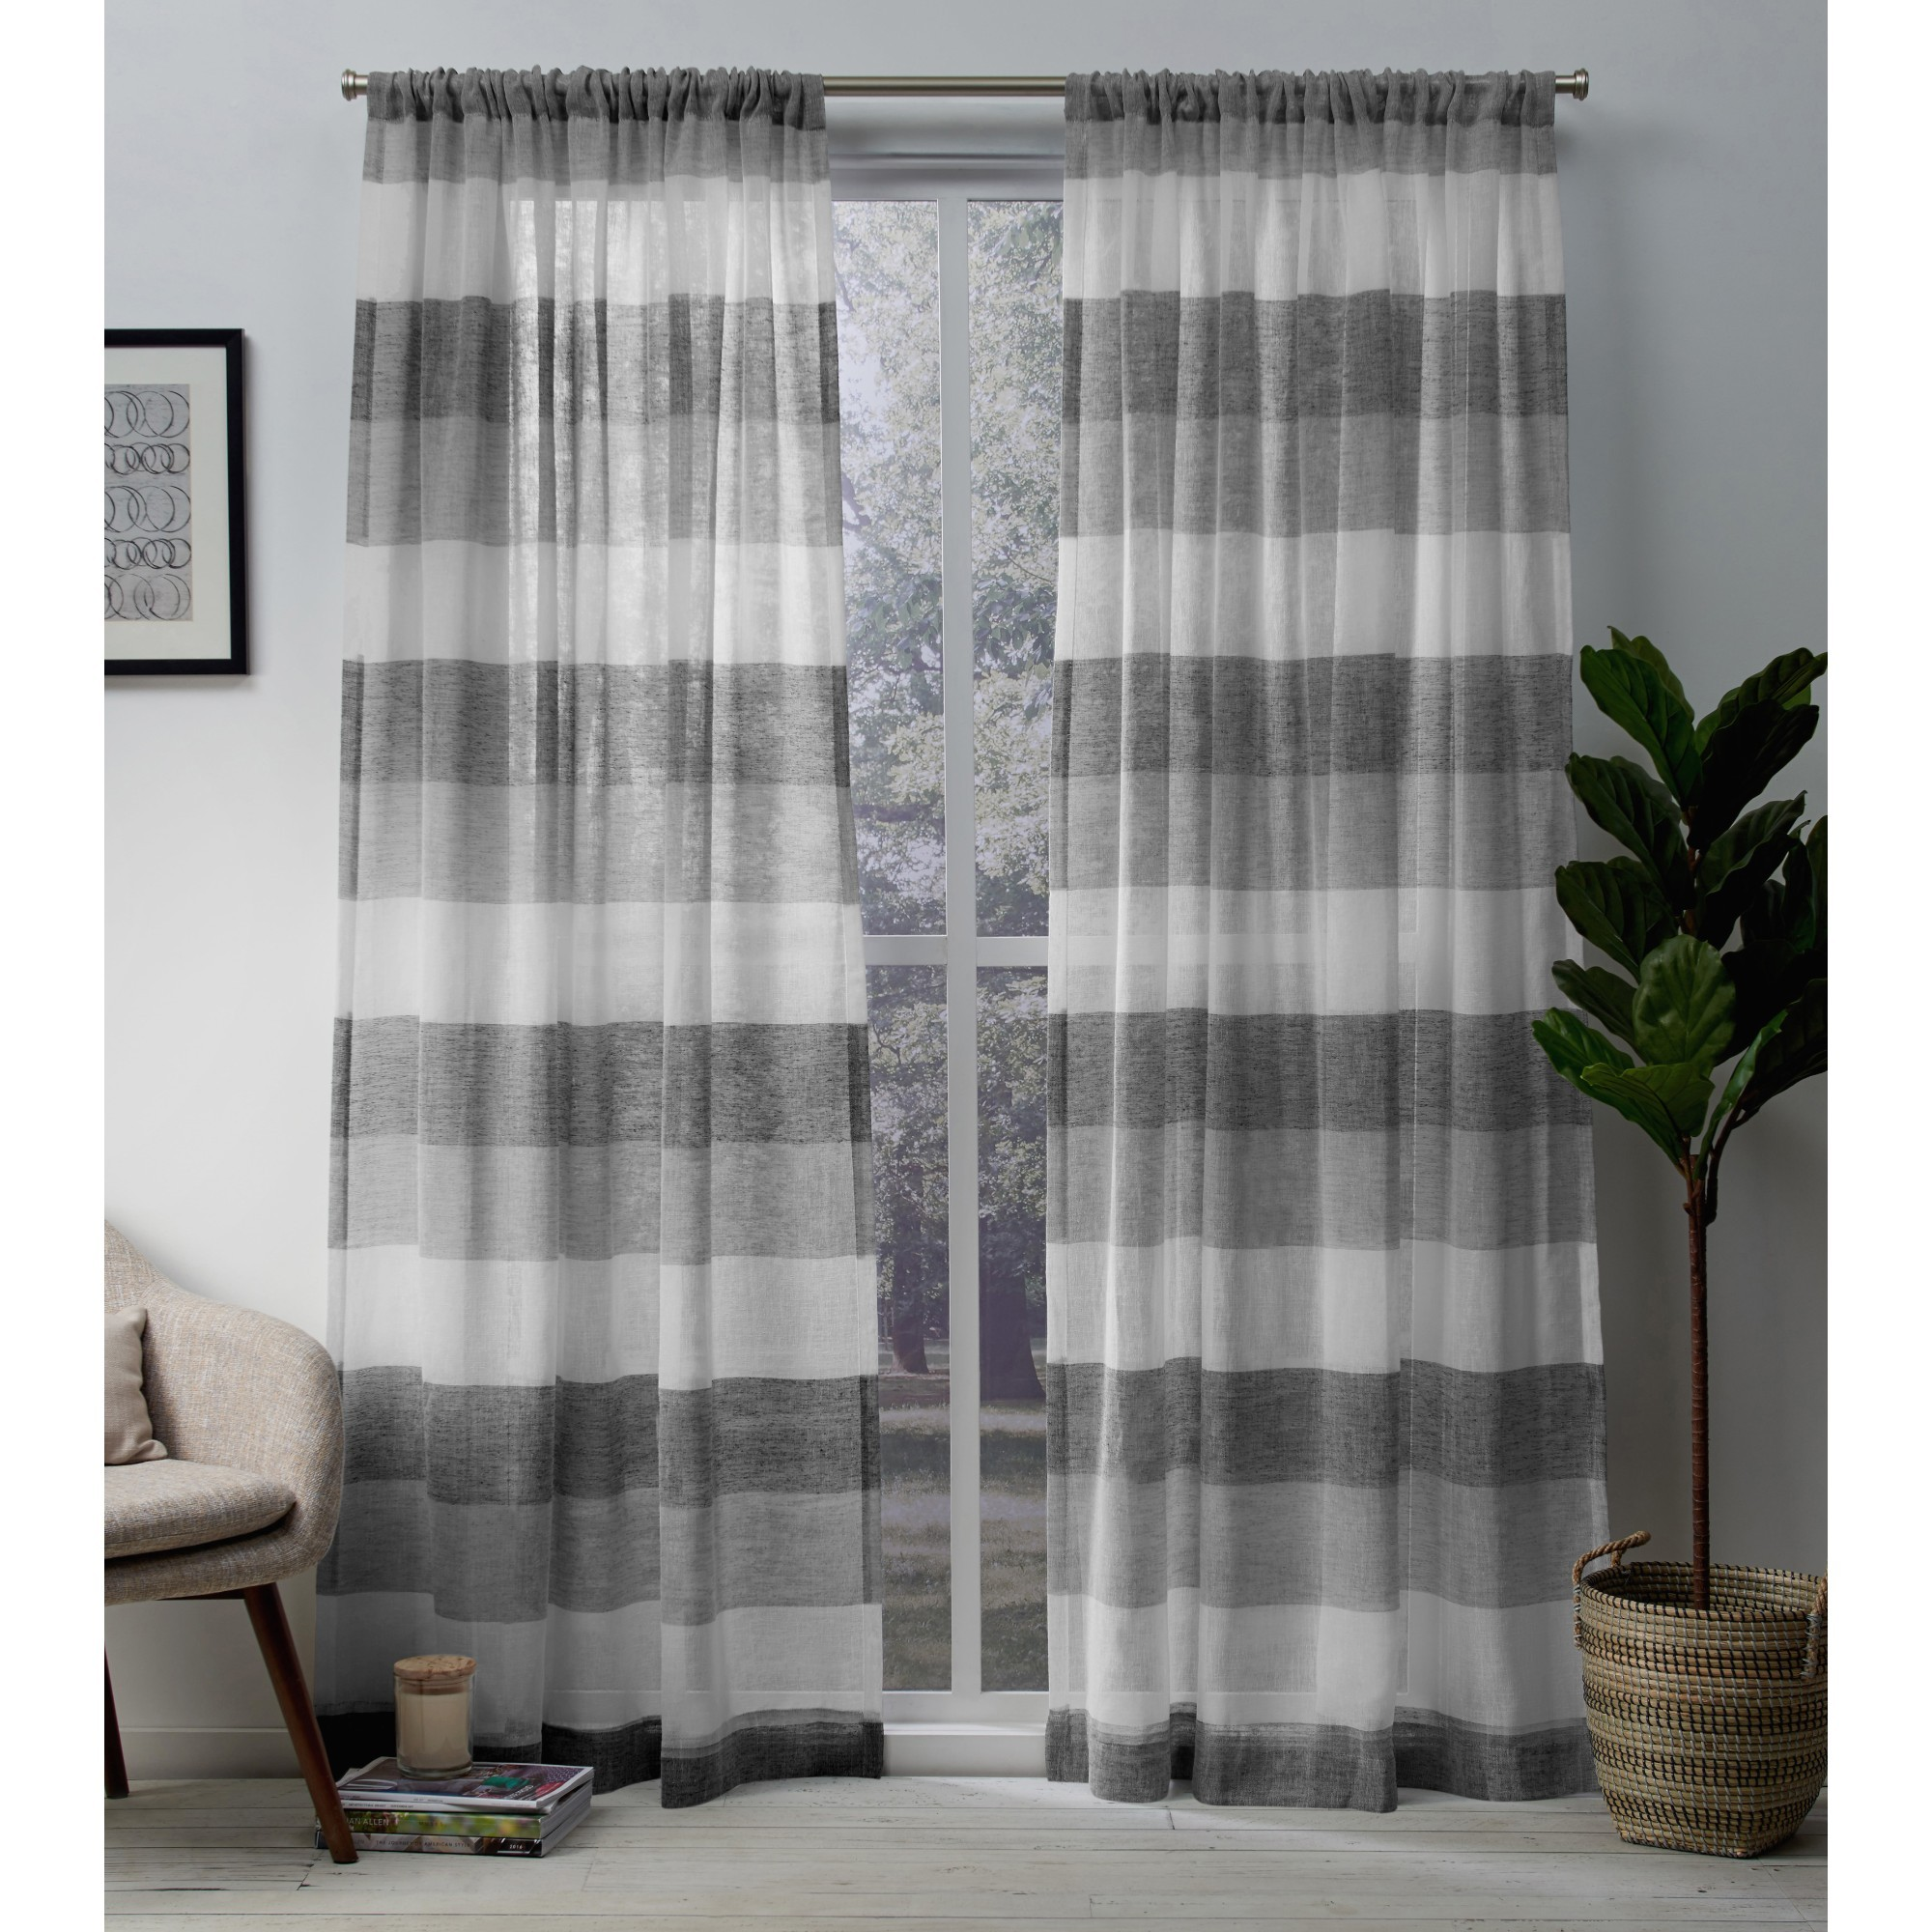 Exclusive Home Curtains 2 Pack Bern Stripe Sheer Rod Pocket Curtain Panels